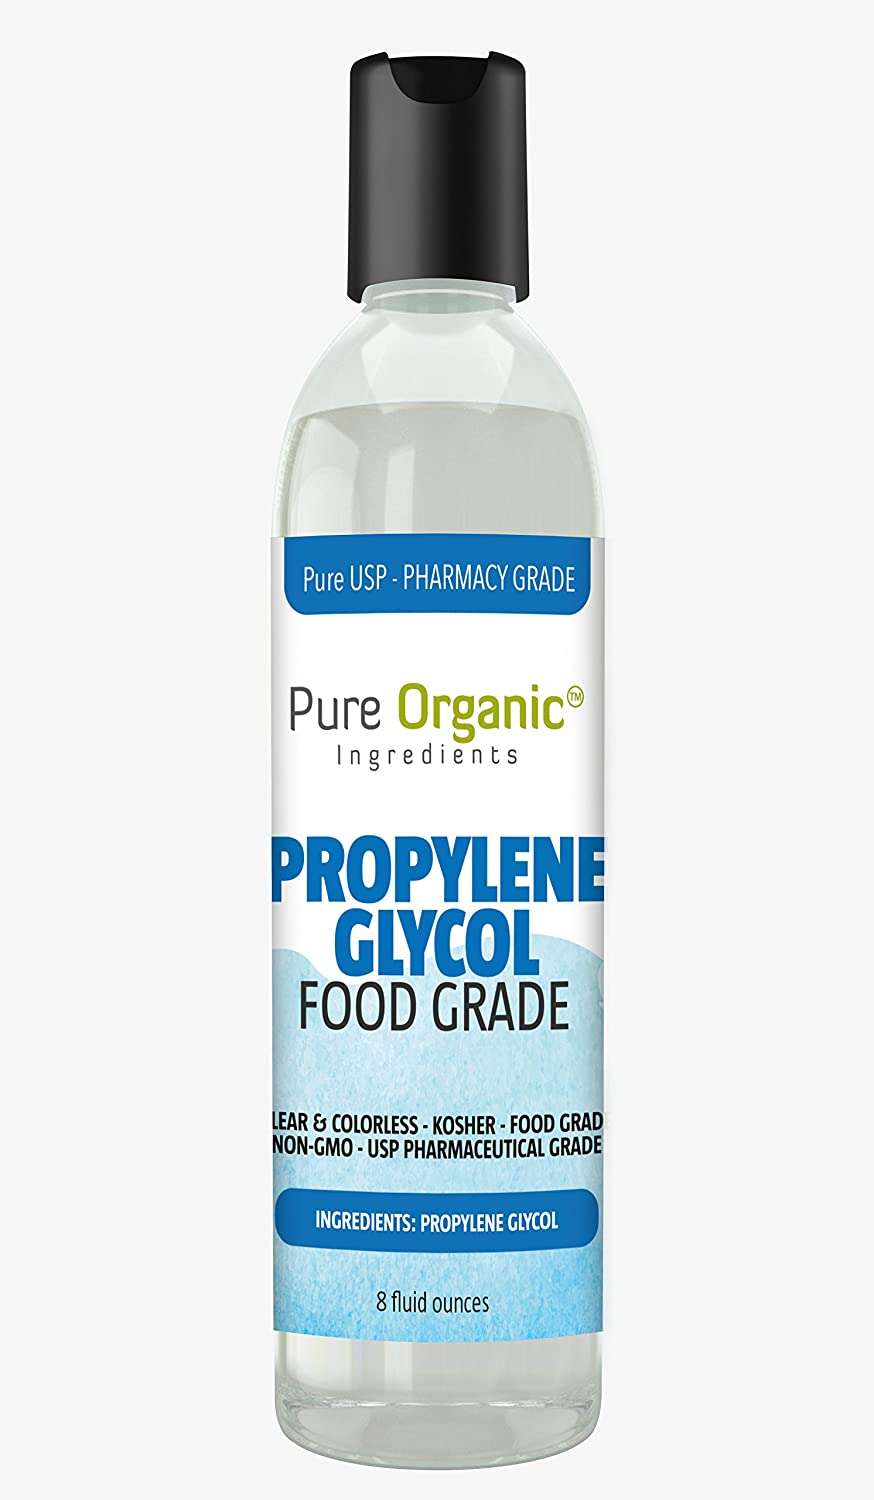 Propylene Glycol (8 oz.) by Pure Organic Ingredients, 100% Pure, Food & Pharmaceutical Grade, Hypoallergenic Moisturizer and Skin Cleanser